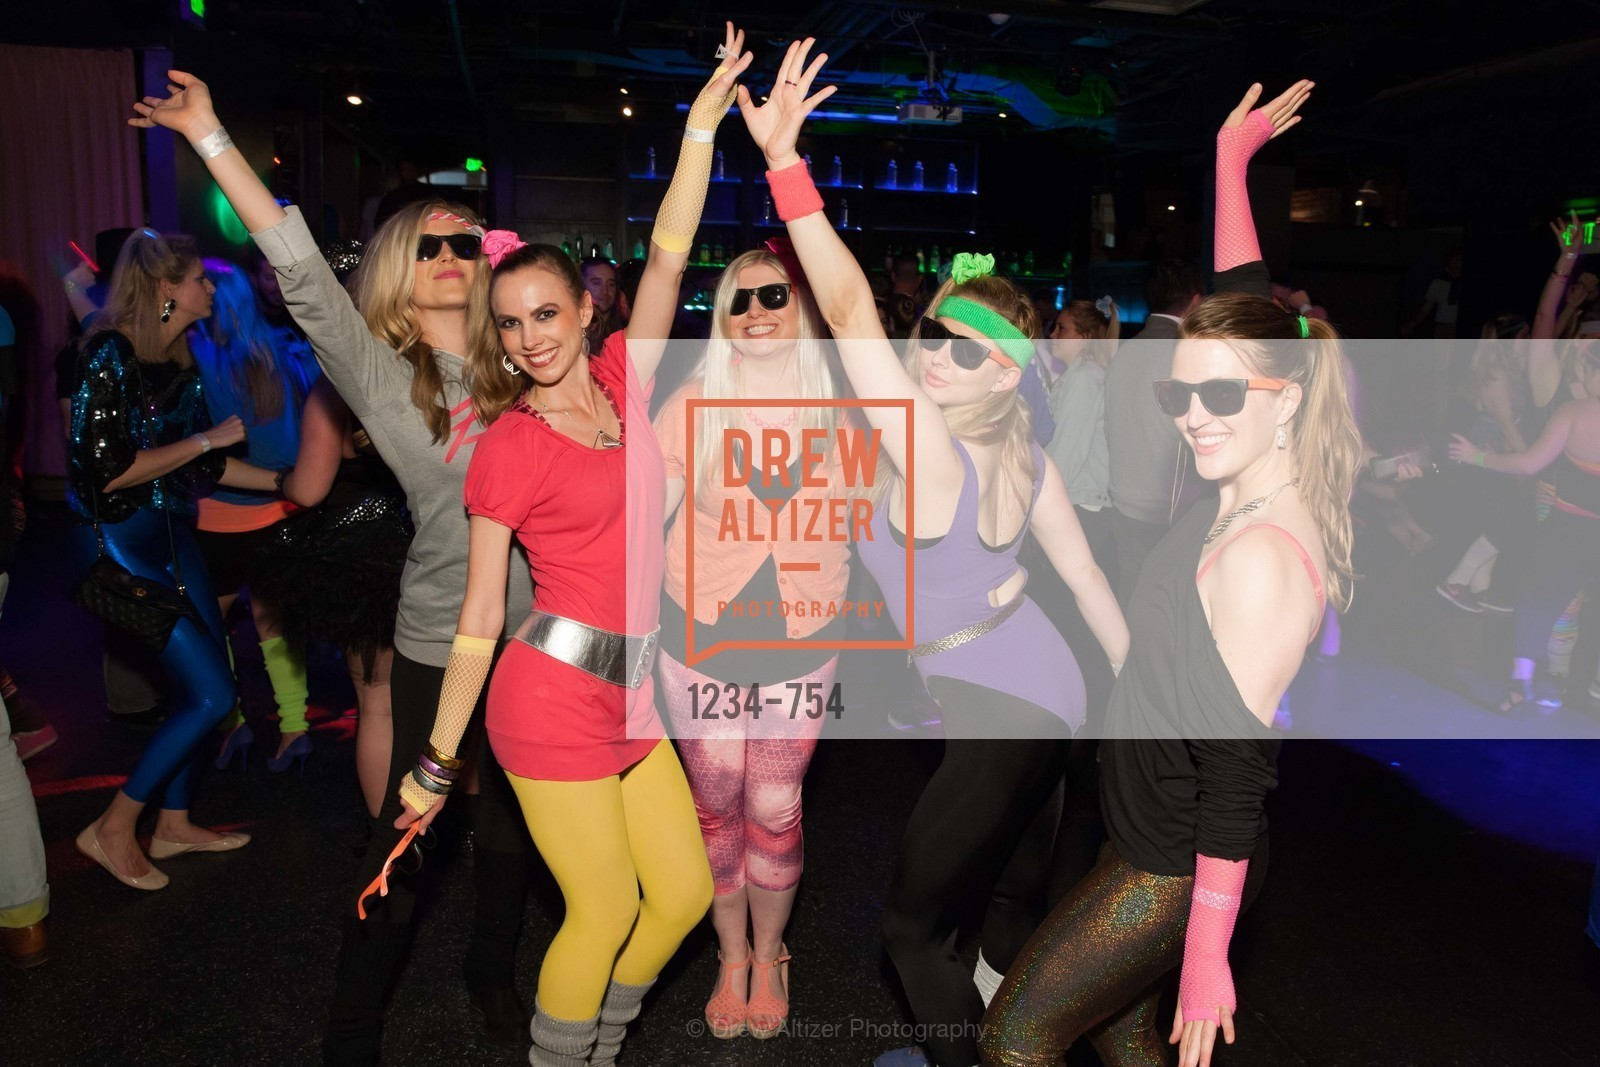 Cambria Steel, Michelle Bertino, Summer McCormick, Elizabeth Sgarrella, SPINSTERS OF SAN FRANCISCO Party Like It's 1985 Charity Party, US, May 29th, 2015,Drew Altizer, Drew Altizer Photography, full-service agency, private events, San Francisco photographer, photographer california